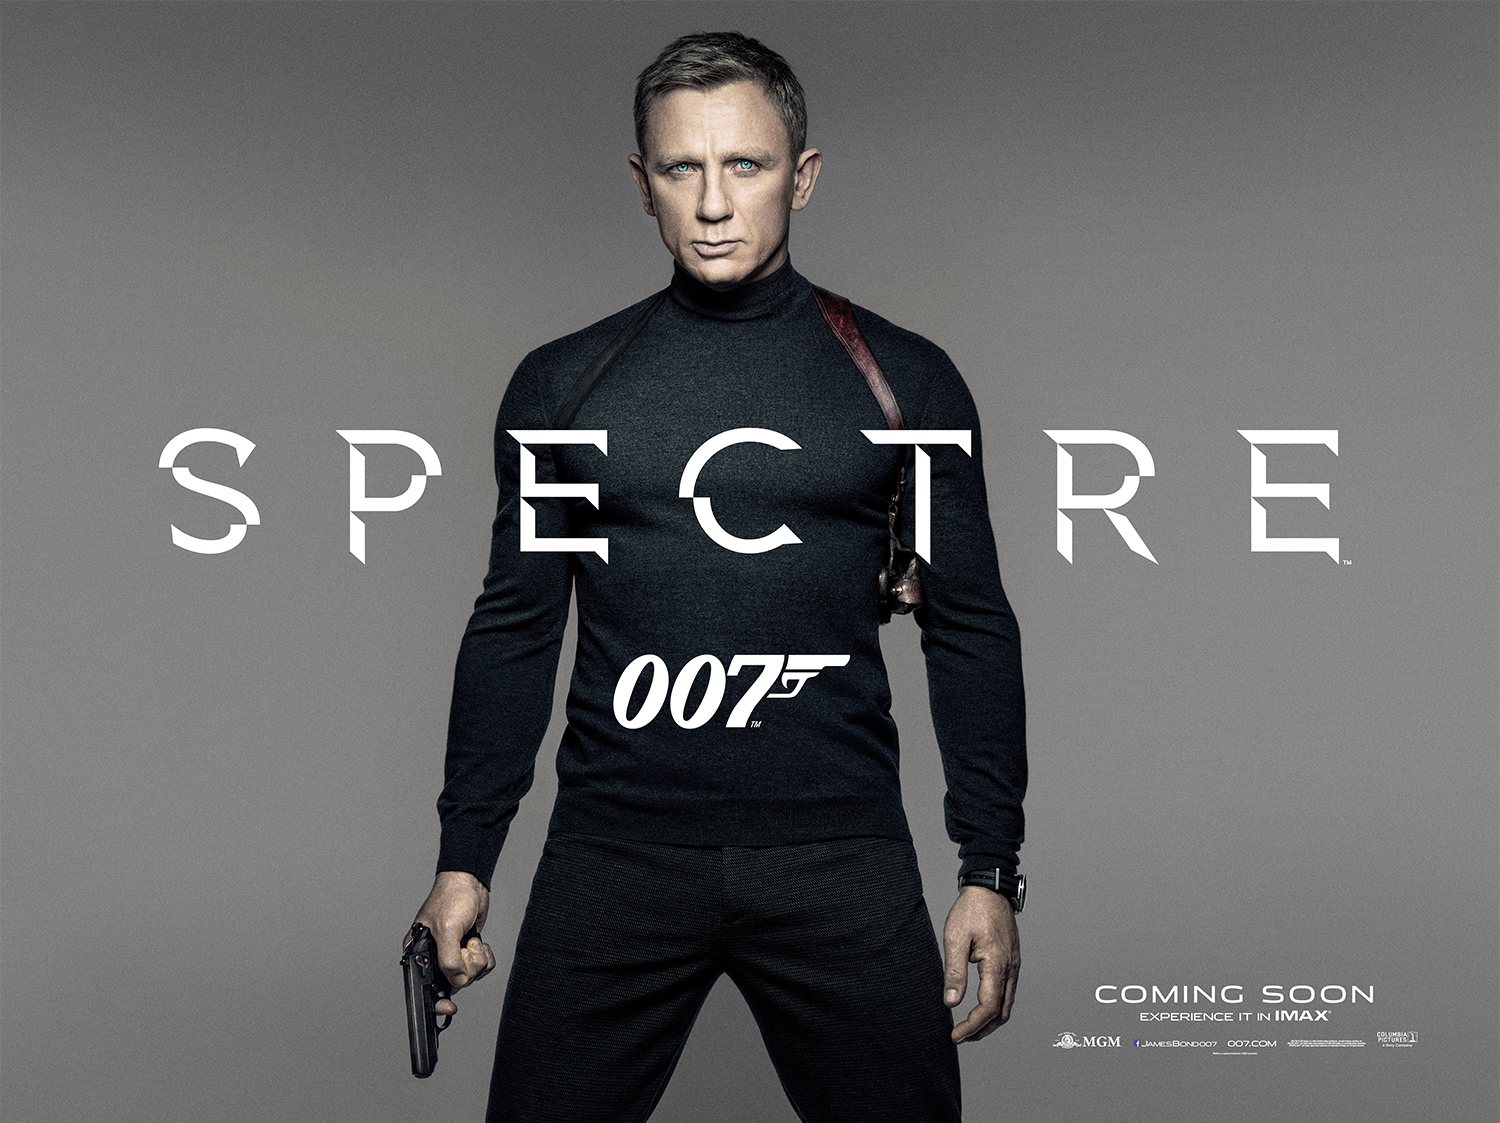 spectre full hd movie downloads movie site